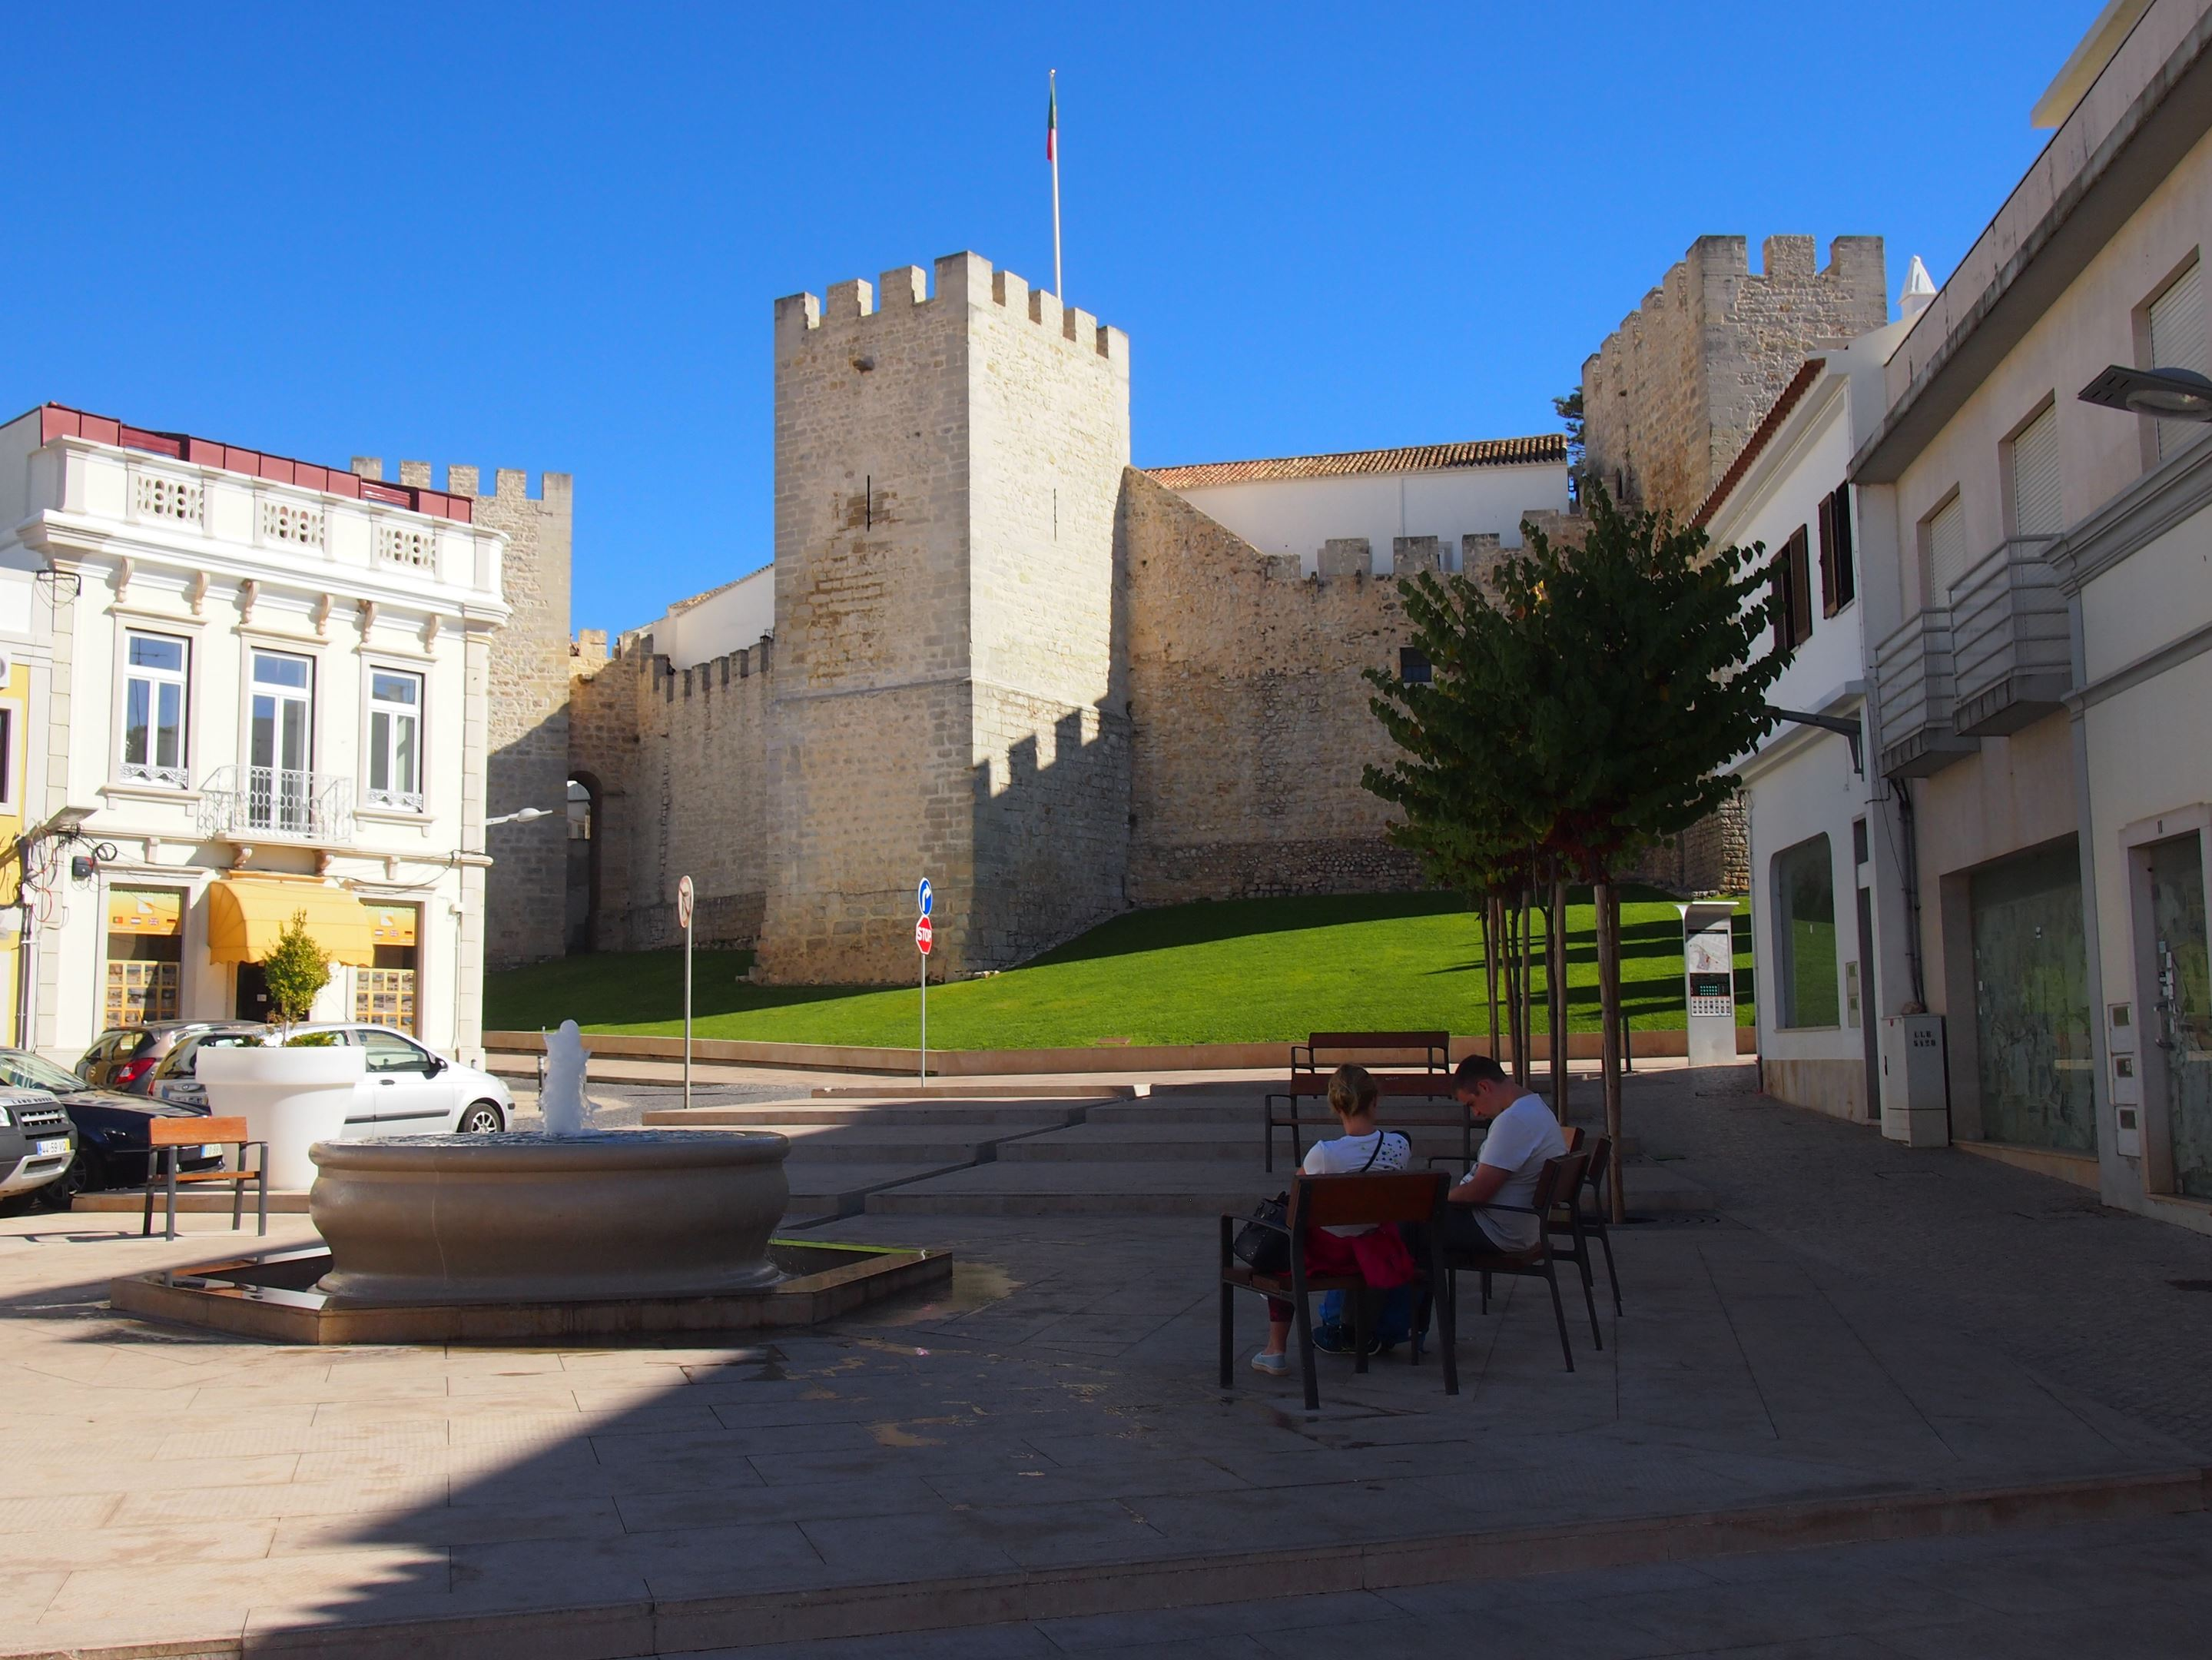 Loulé Castle, located in the old town area of Loulé